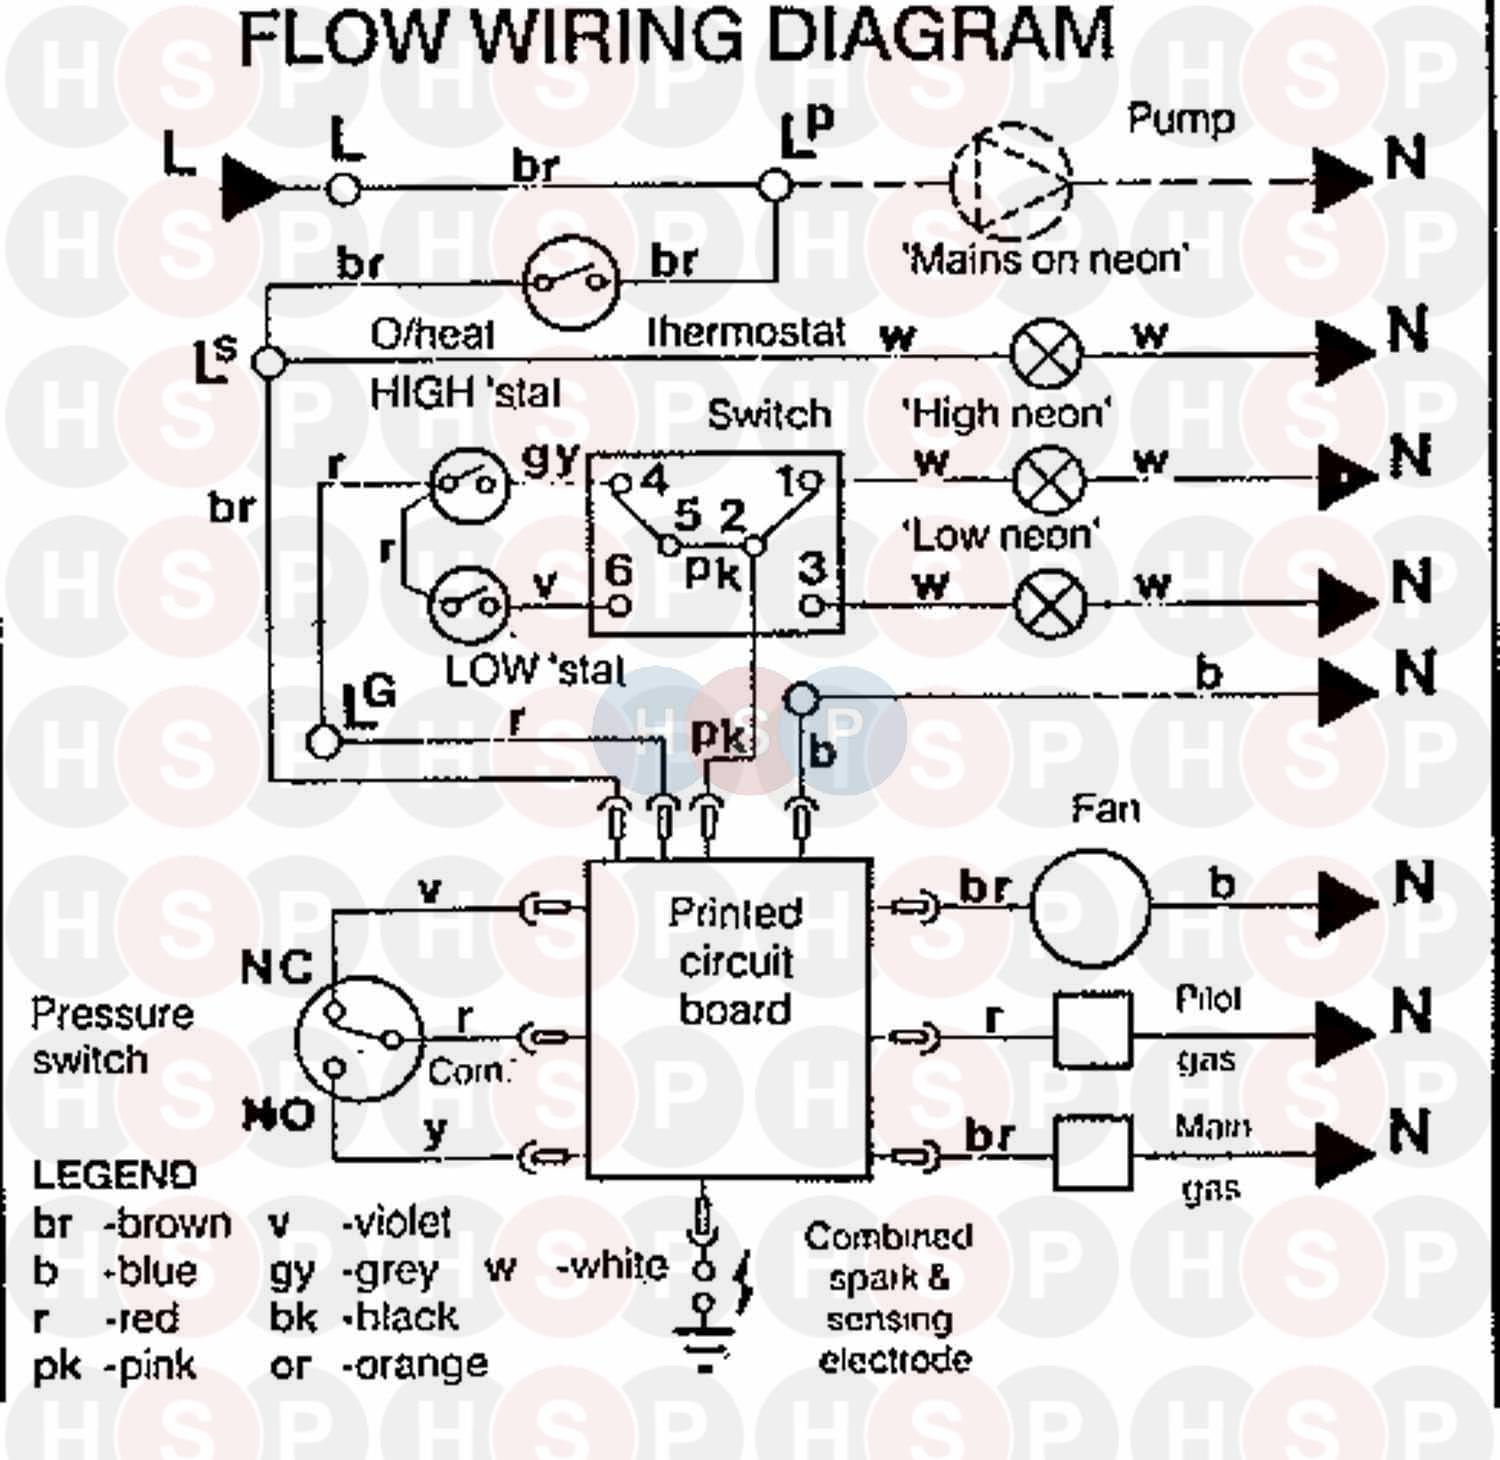 Ideal Elan 2 40f Wiring Diagram 1 Diagram Heating